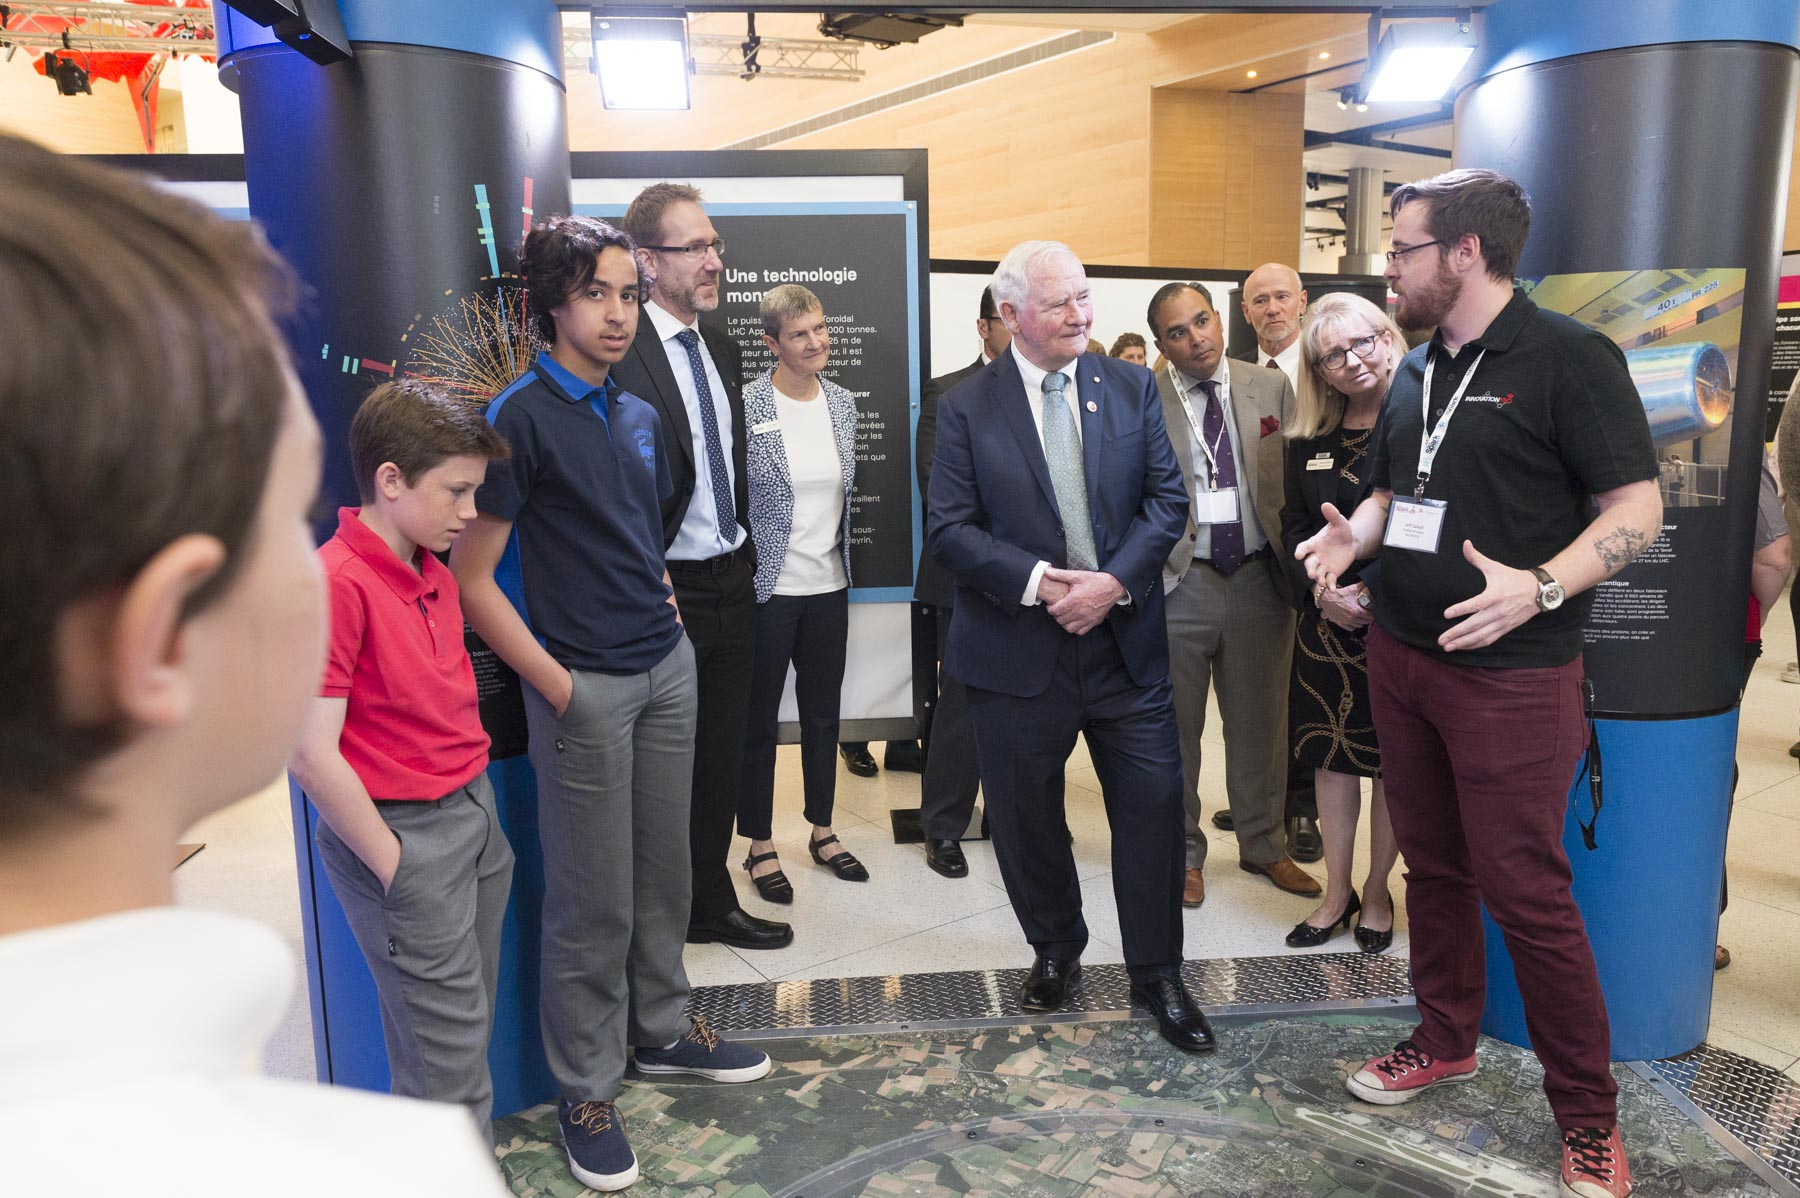 It also brings cutting-edge programming in science, technology, engineering and more to more than 60 communities across the country, with a special focus on youth and Indigenous audiences.